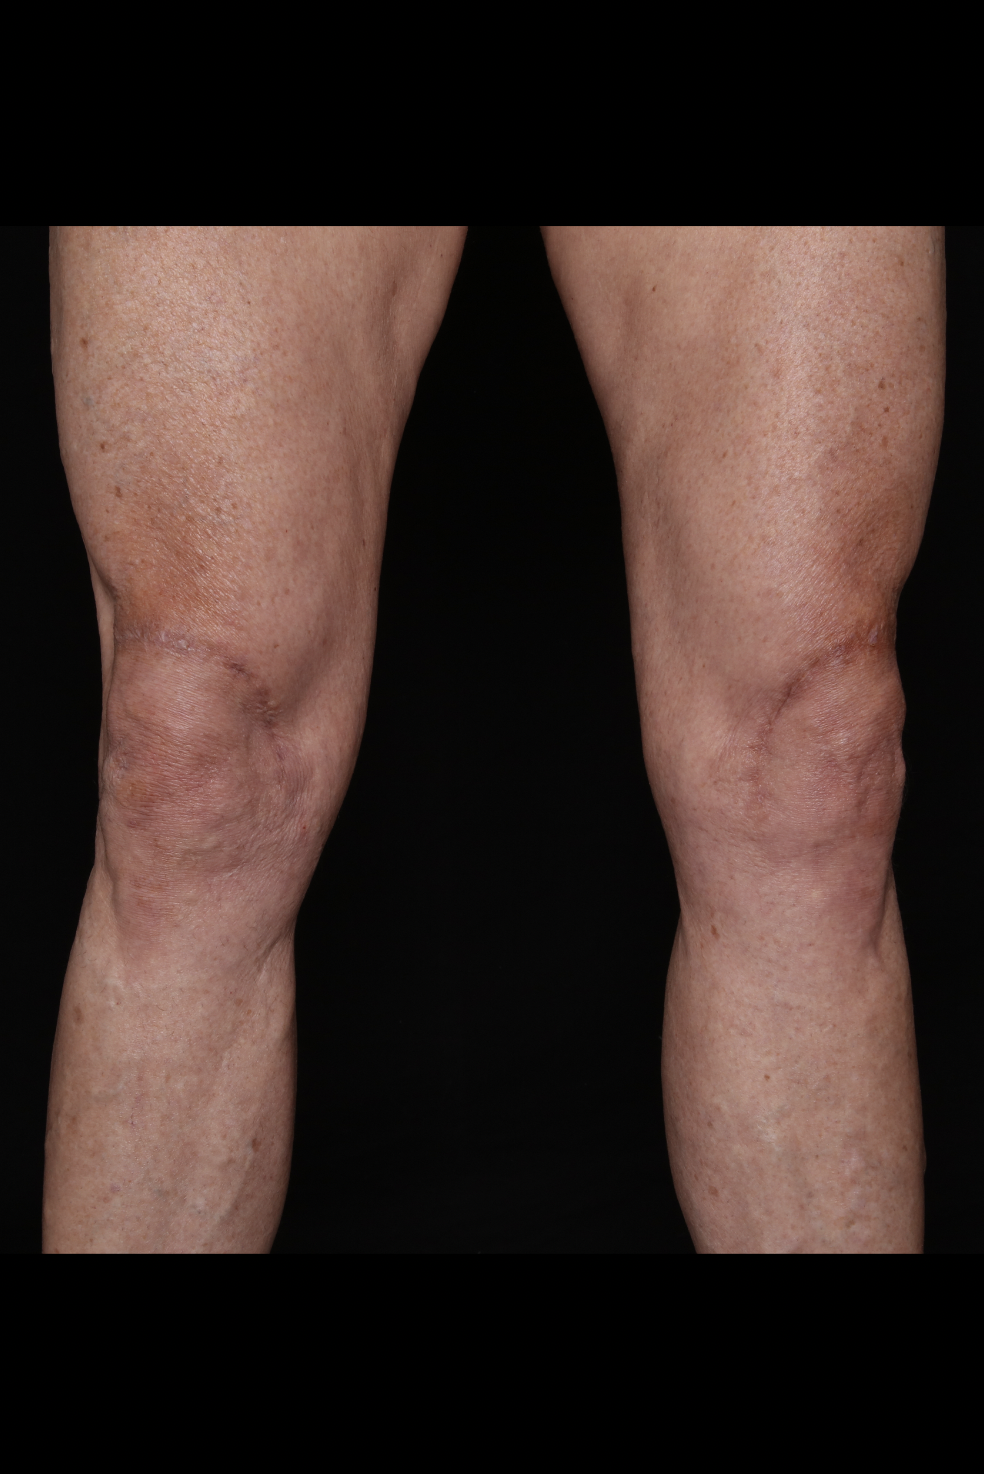 After Thighs Procedure - Knee Lift - Excess Skin Removal